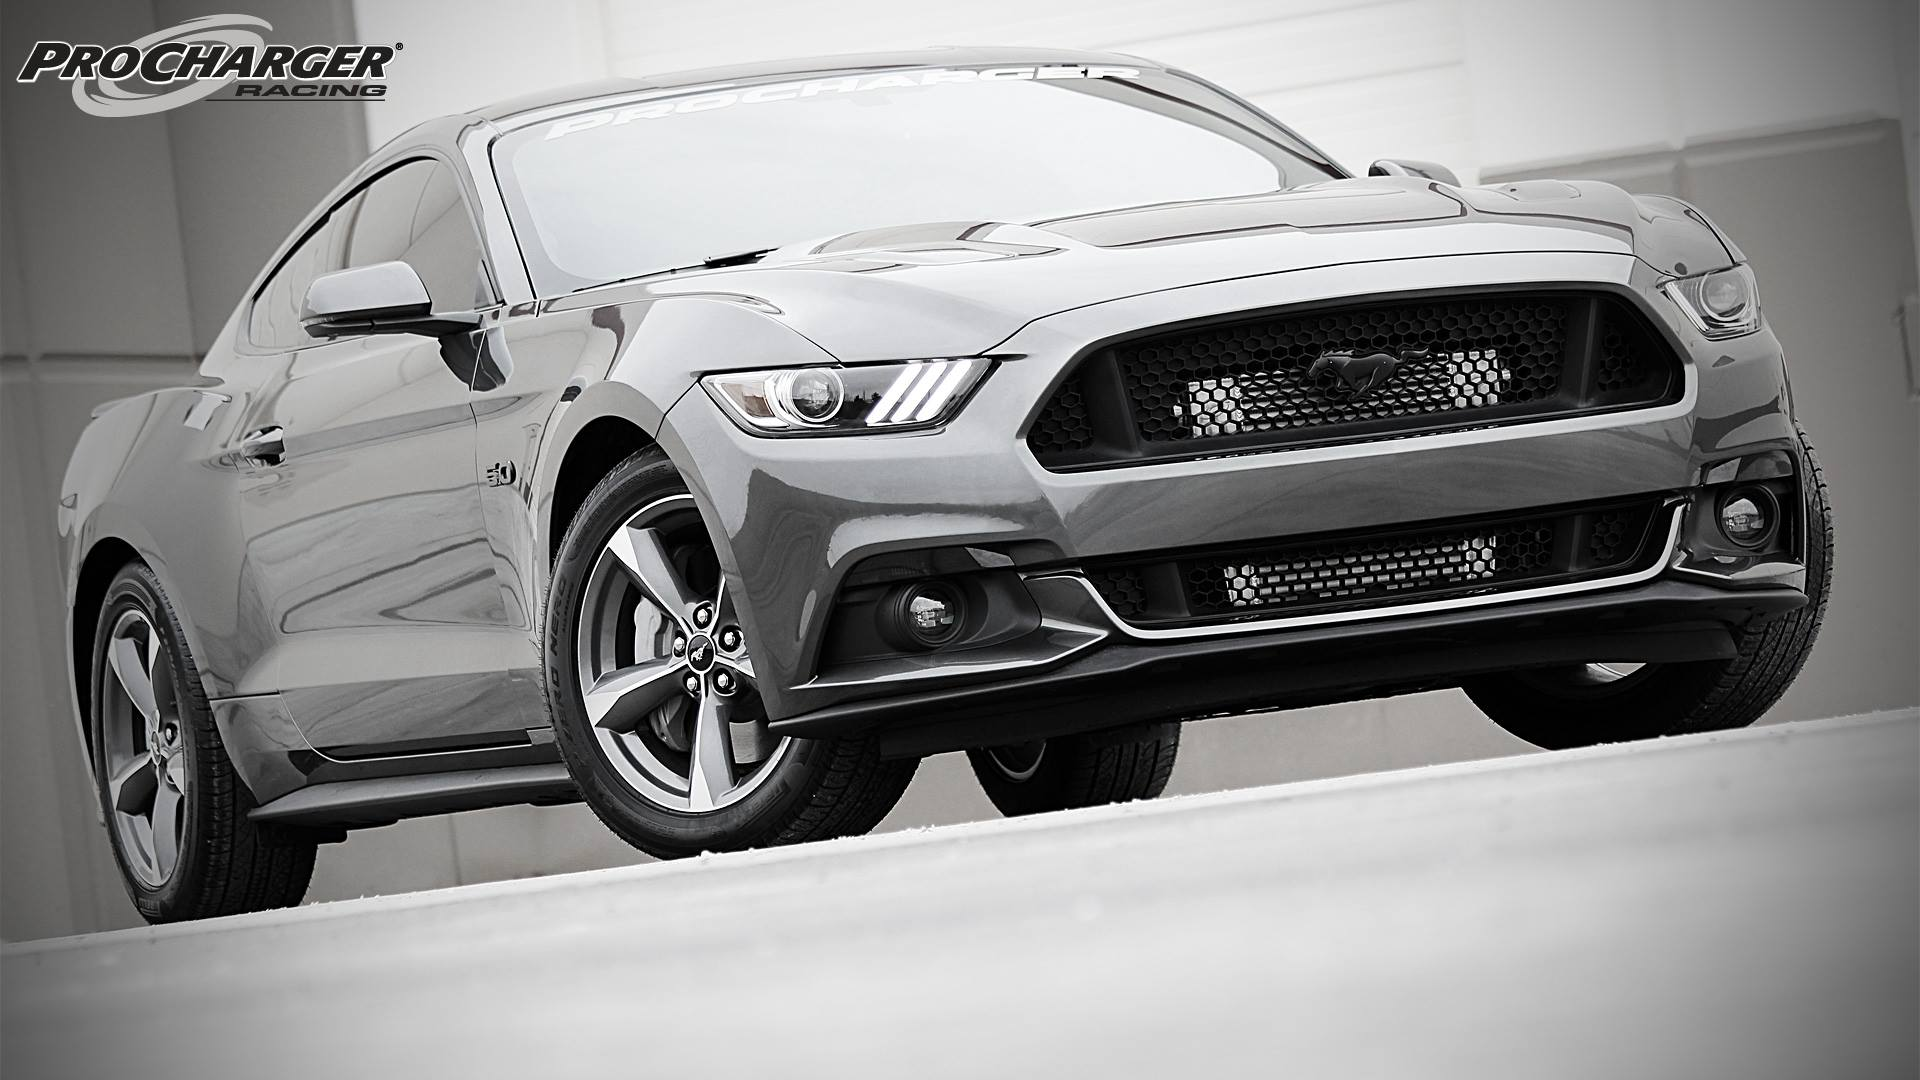 Ford Escape Ecoboost >> 2015 Ford Mustang Supercharger System from ProCharger ...